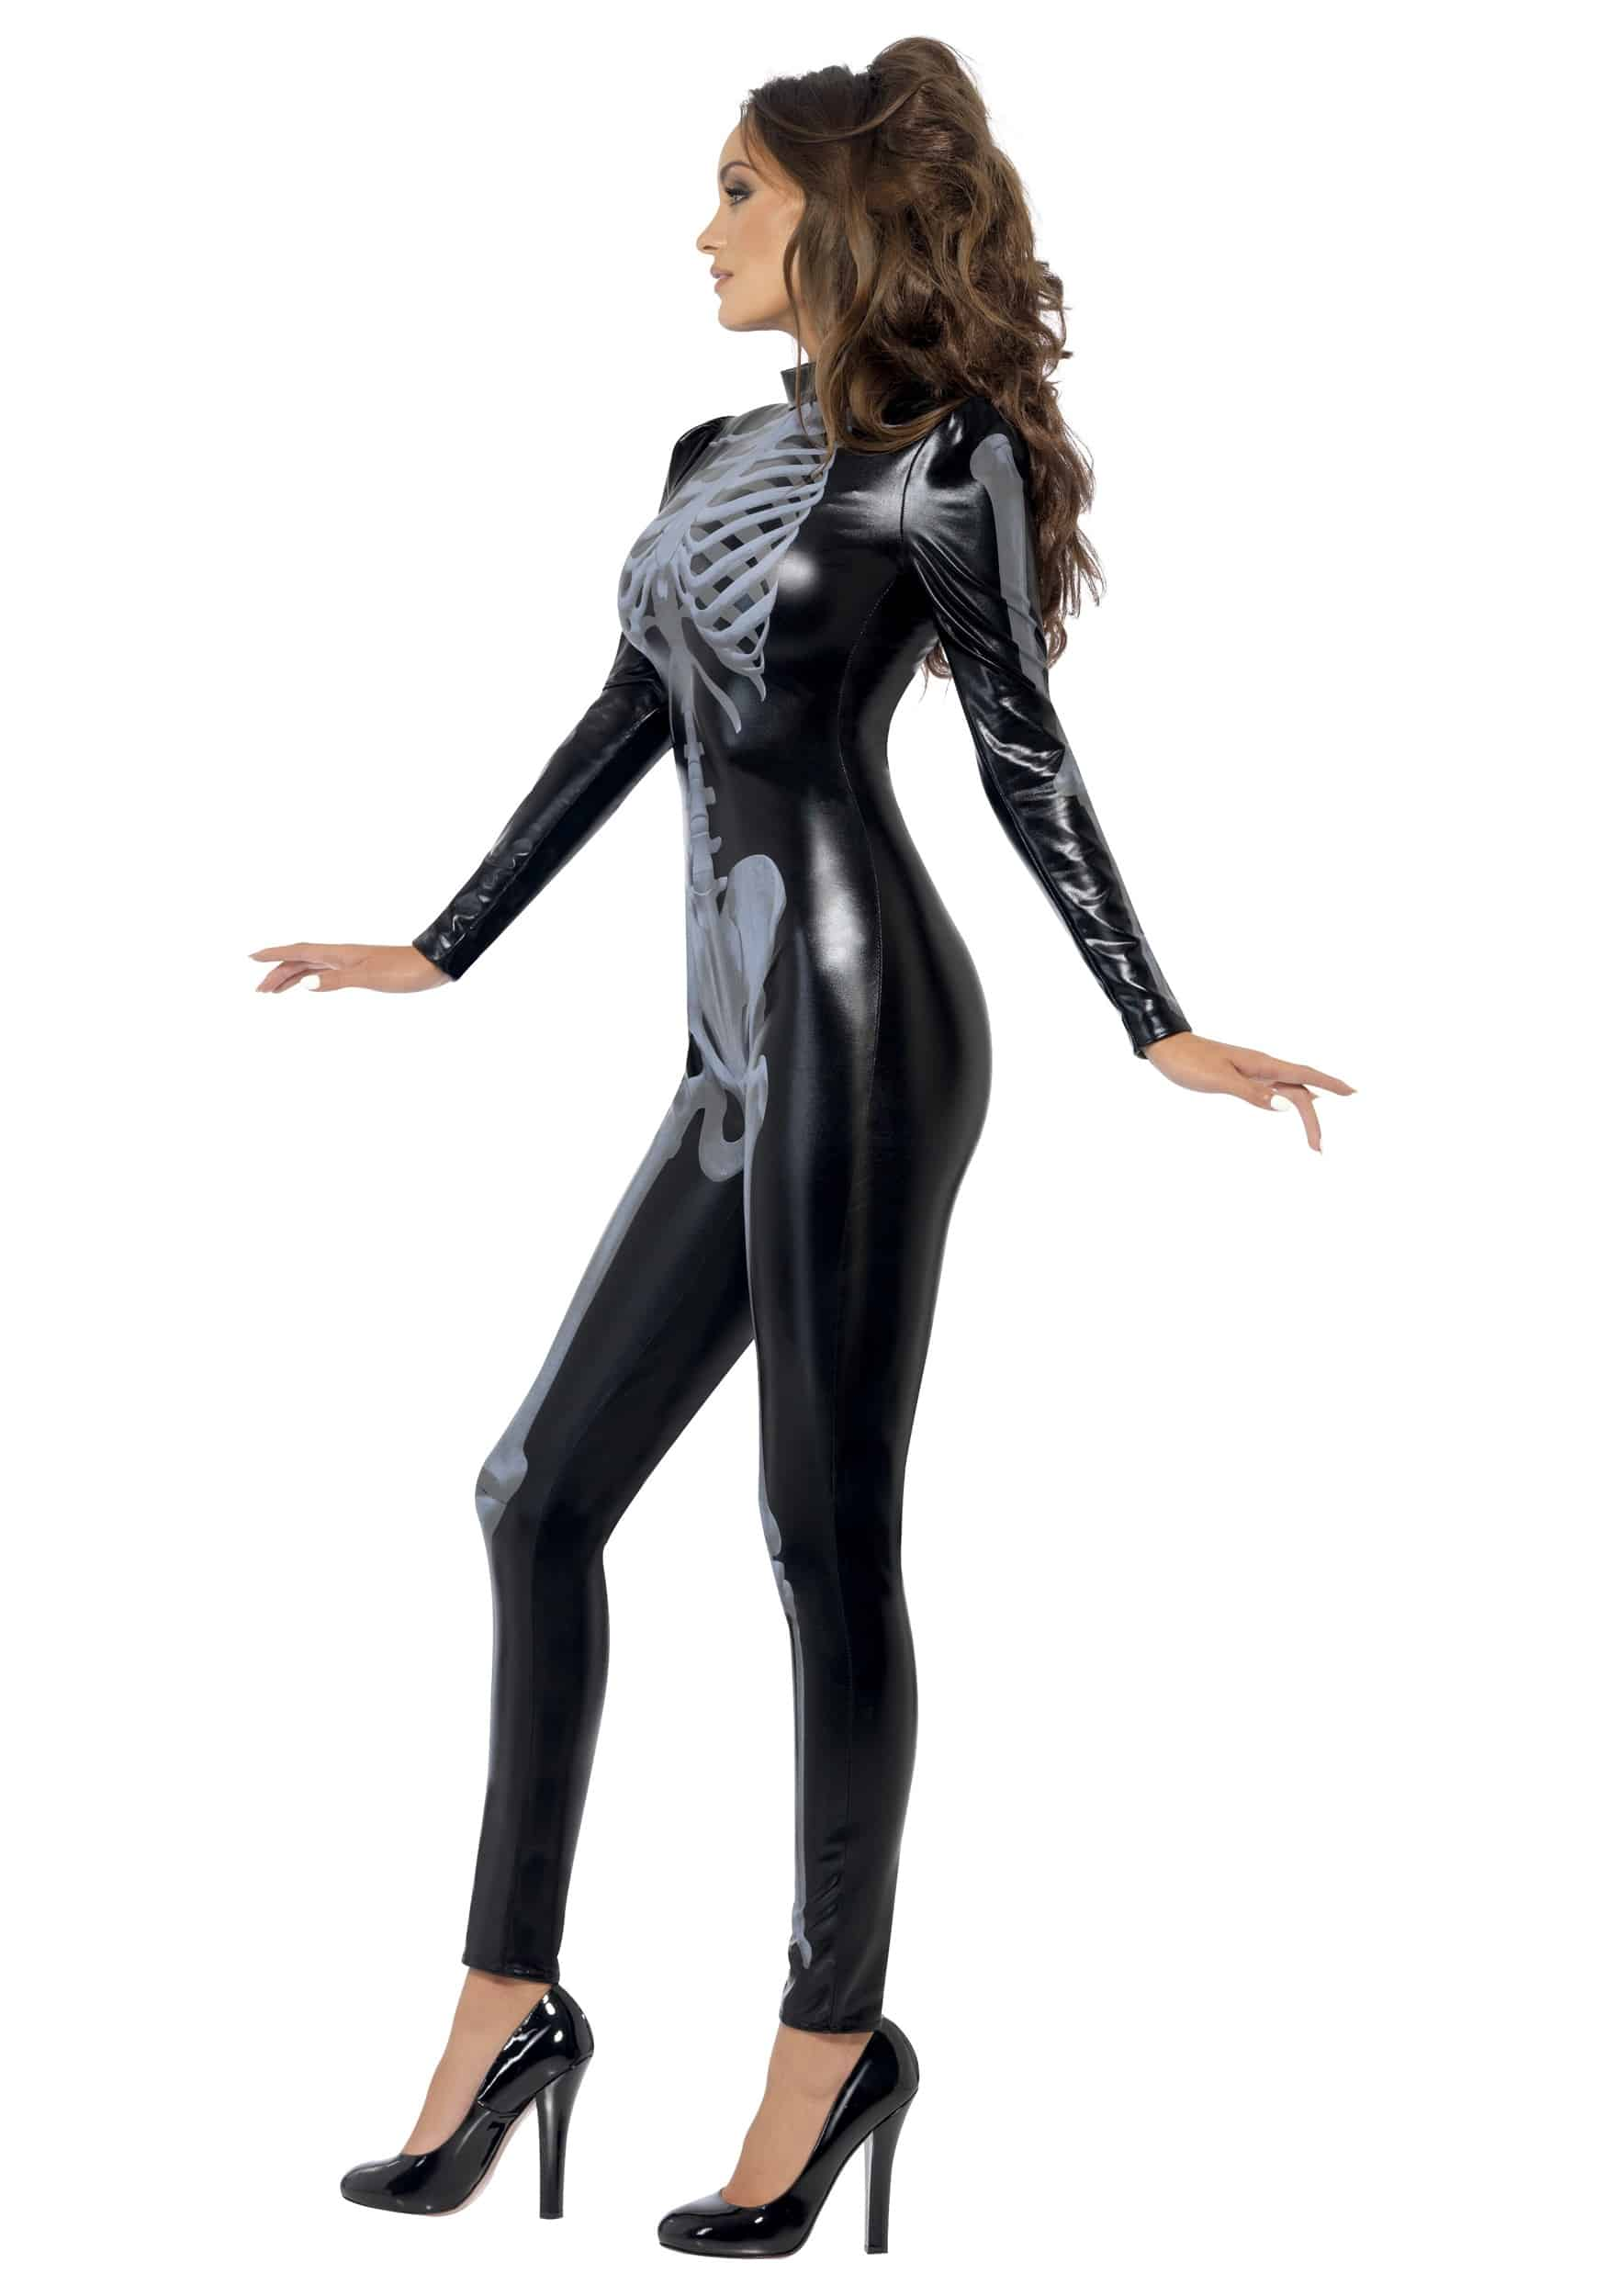 Fever Womens Skeleton Costume Catsuit with Cap Sleeves Simple but Cool Outfit